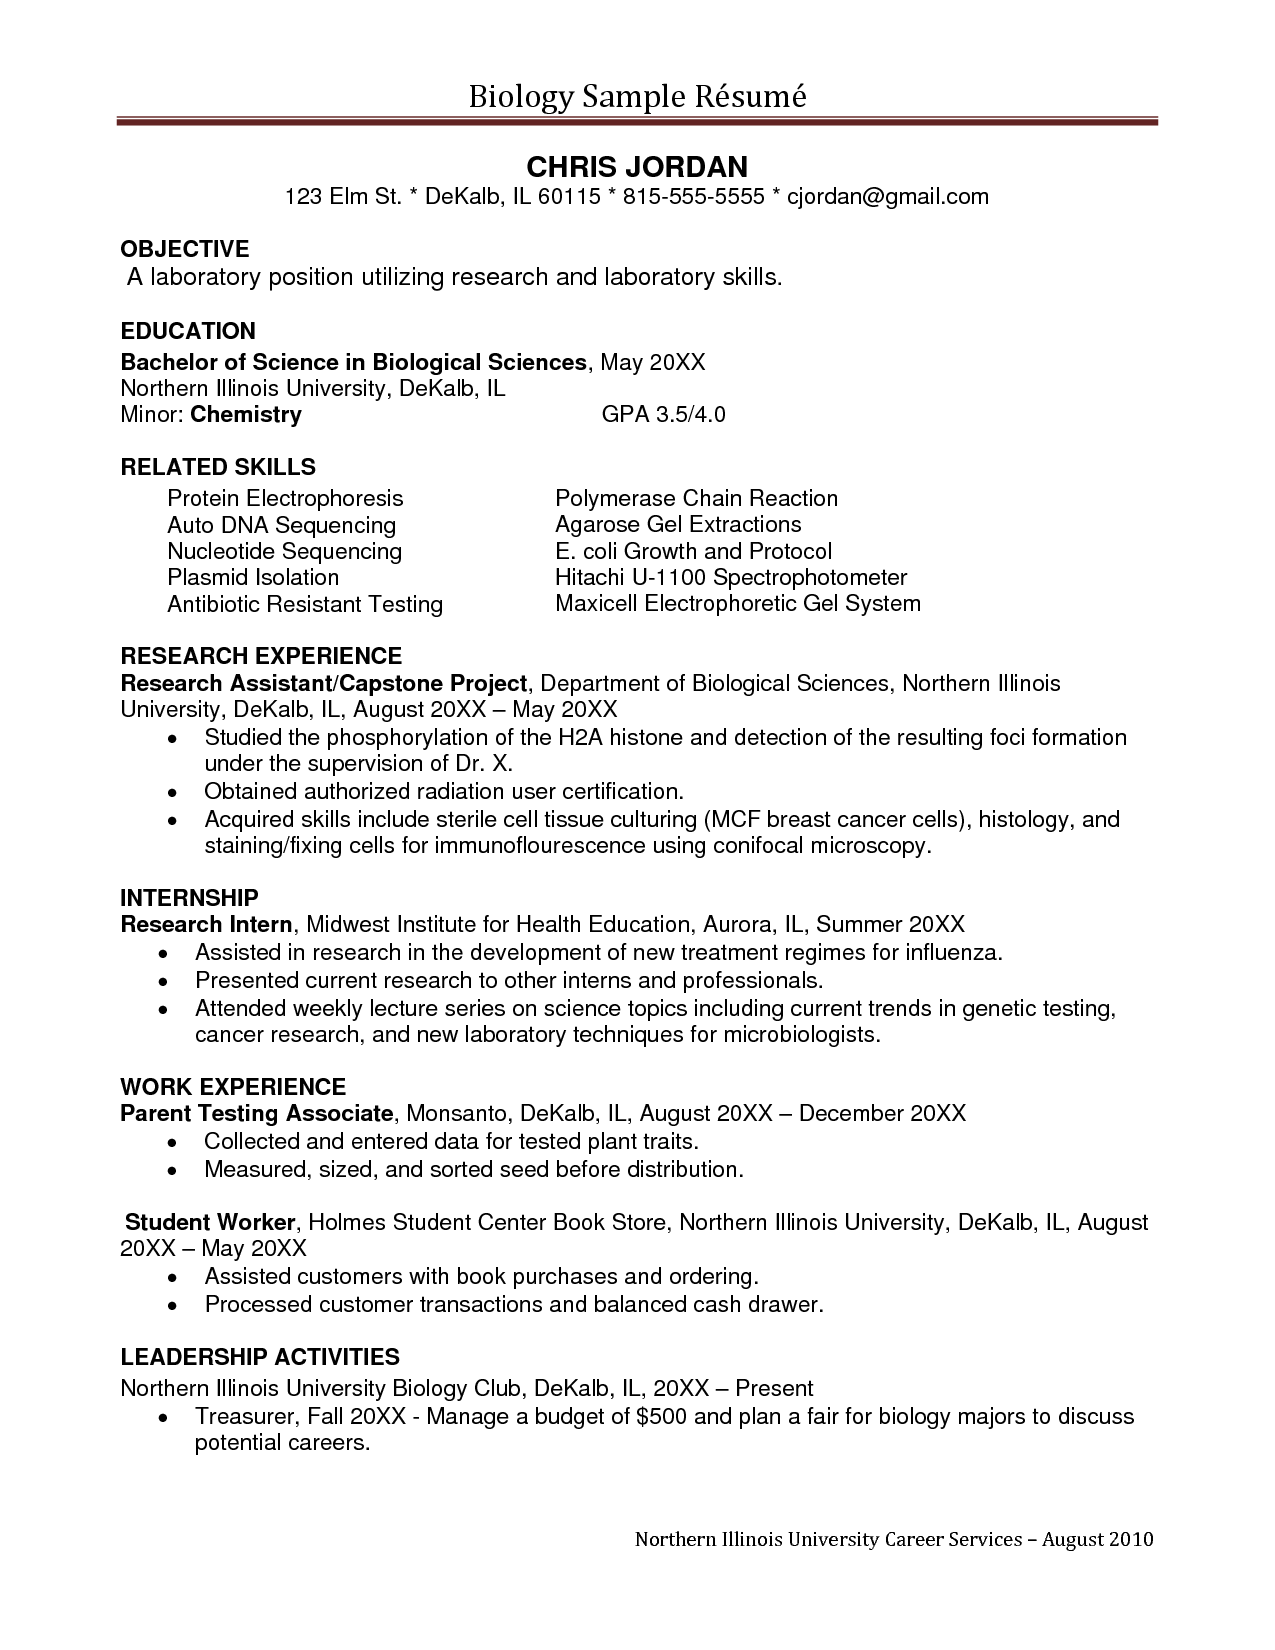 Biology Resume Template Sample Undergraduate Research Assistant Resume Sampleĺ